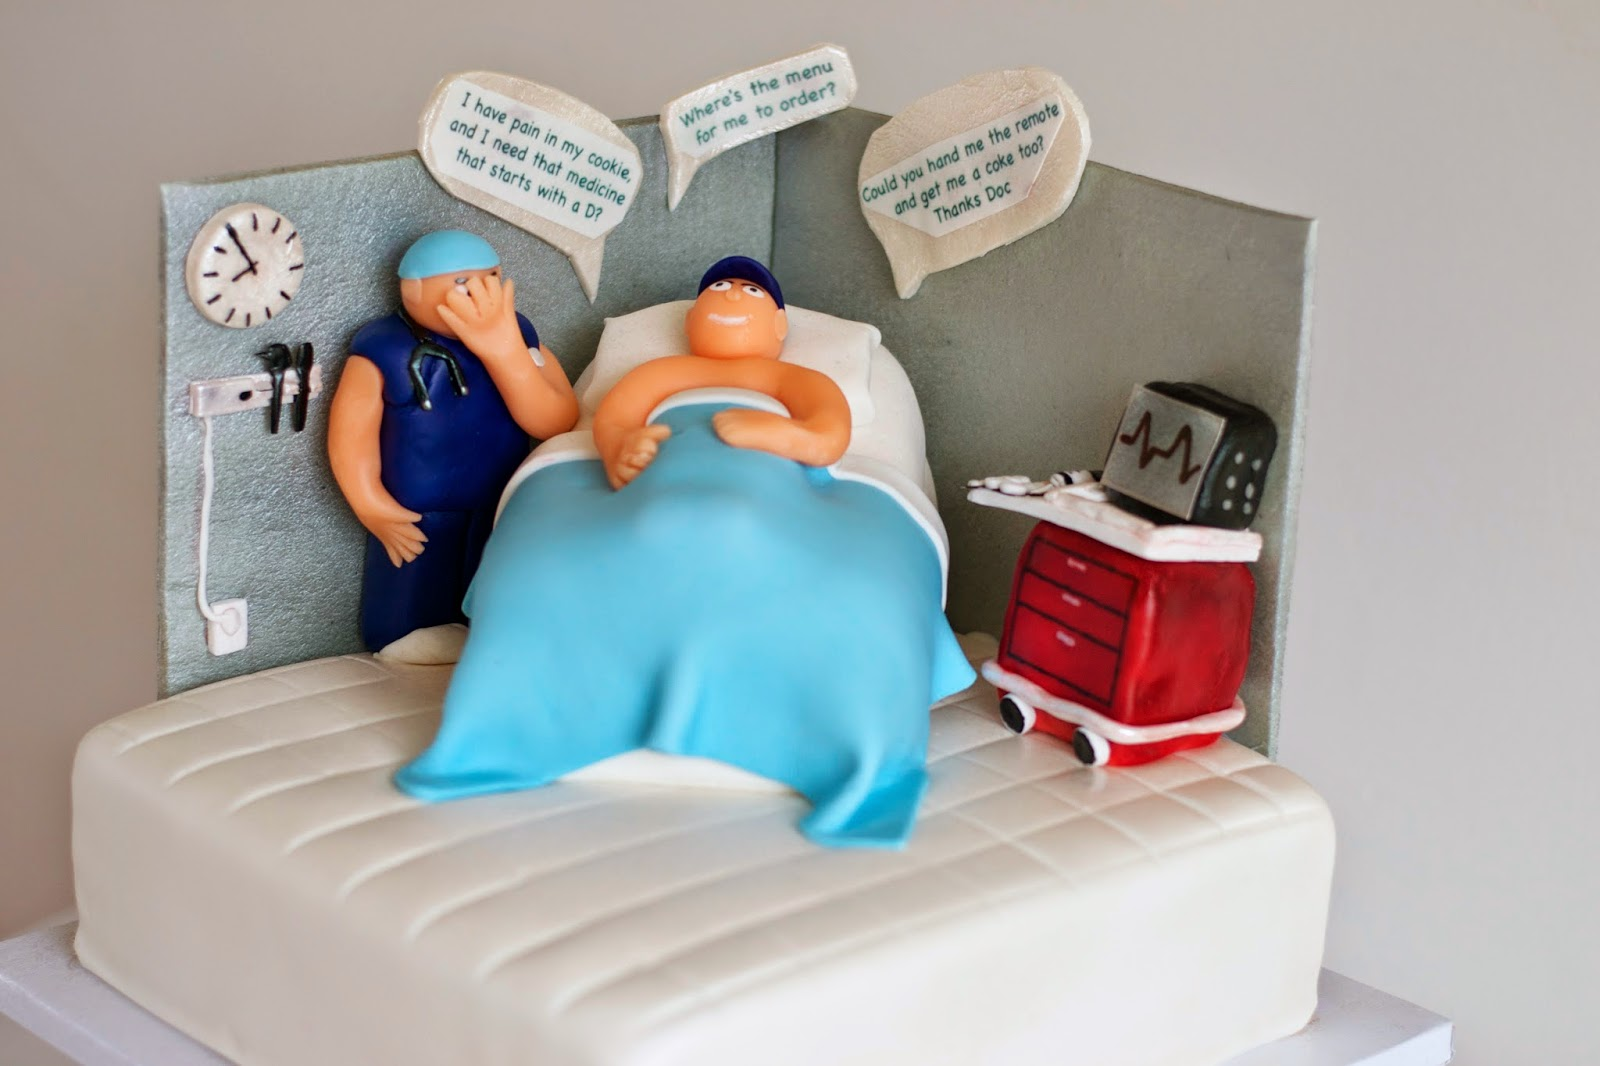 Utah County Wedding Cakes & Dessert Catering, Emergency Room Doctor Cake